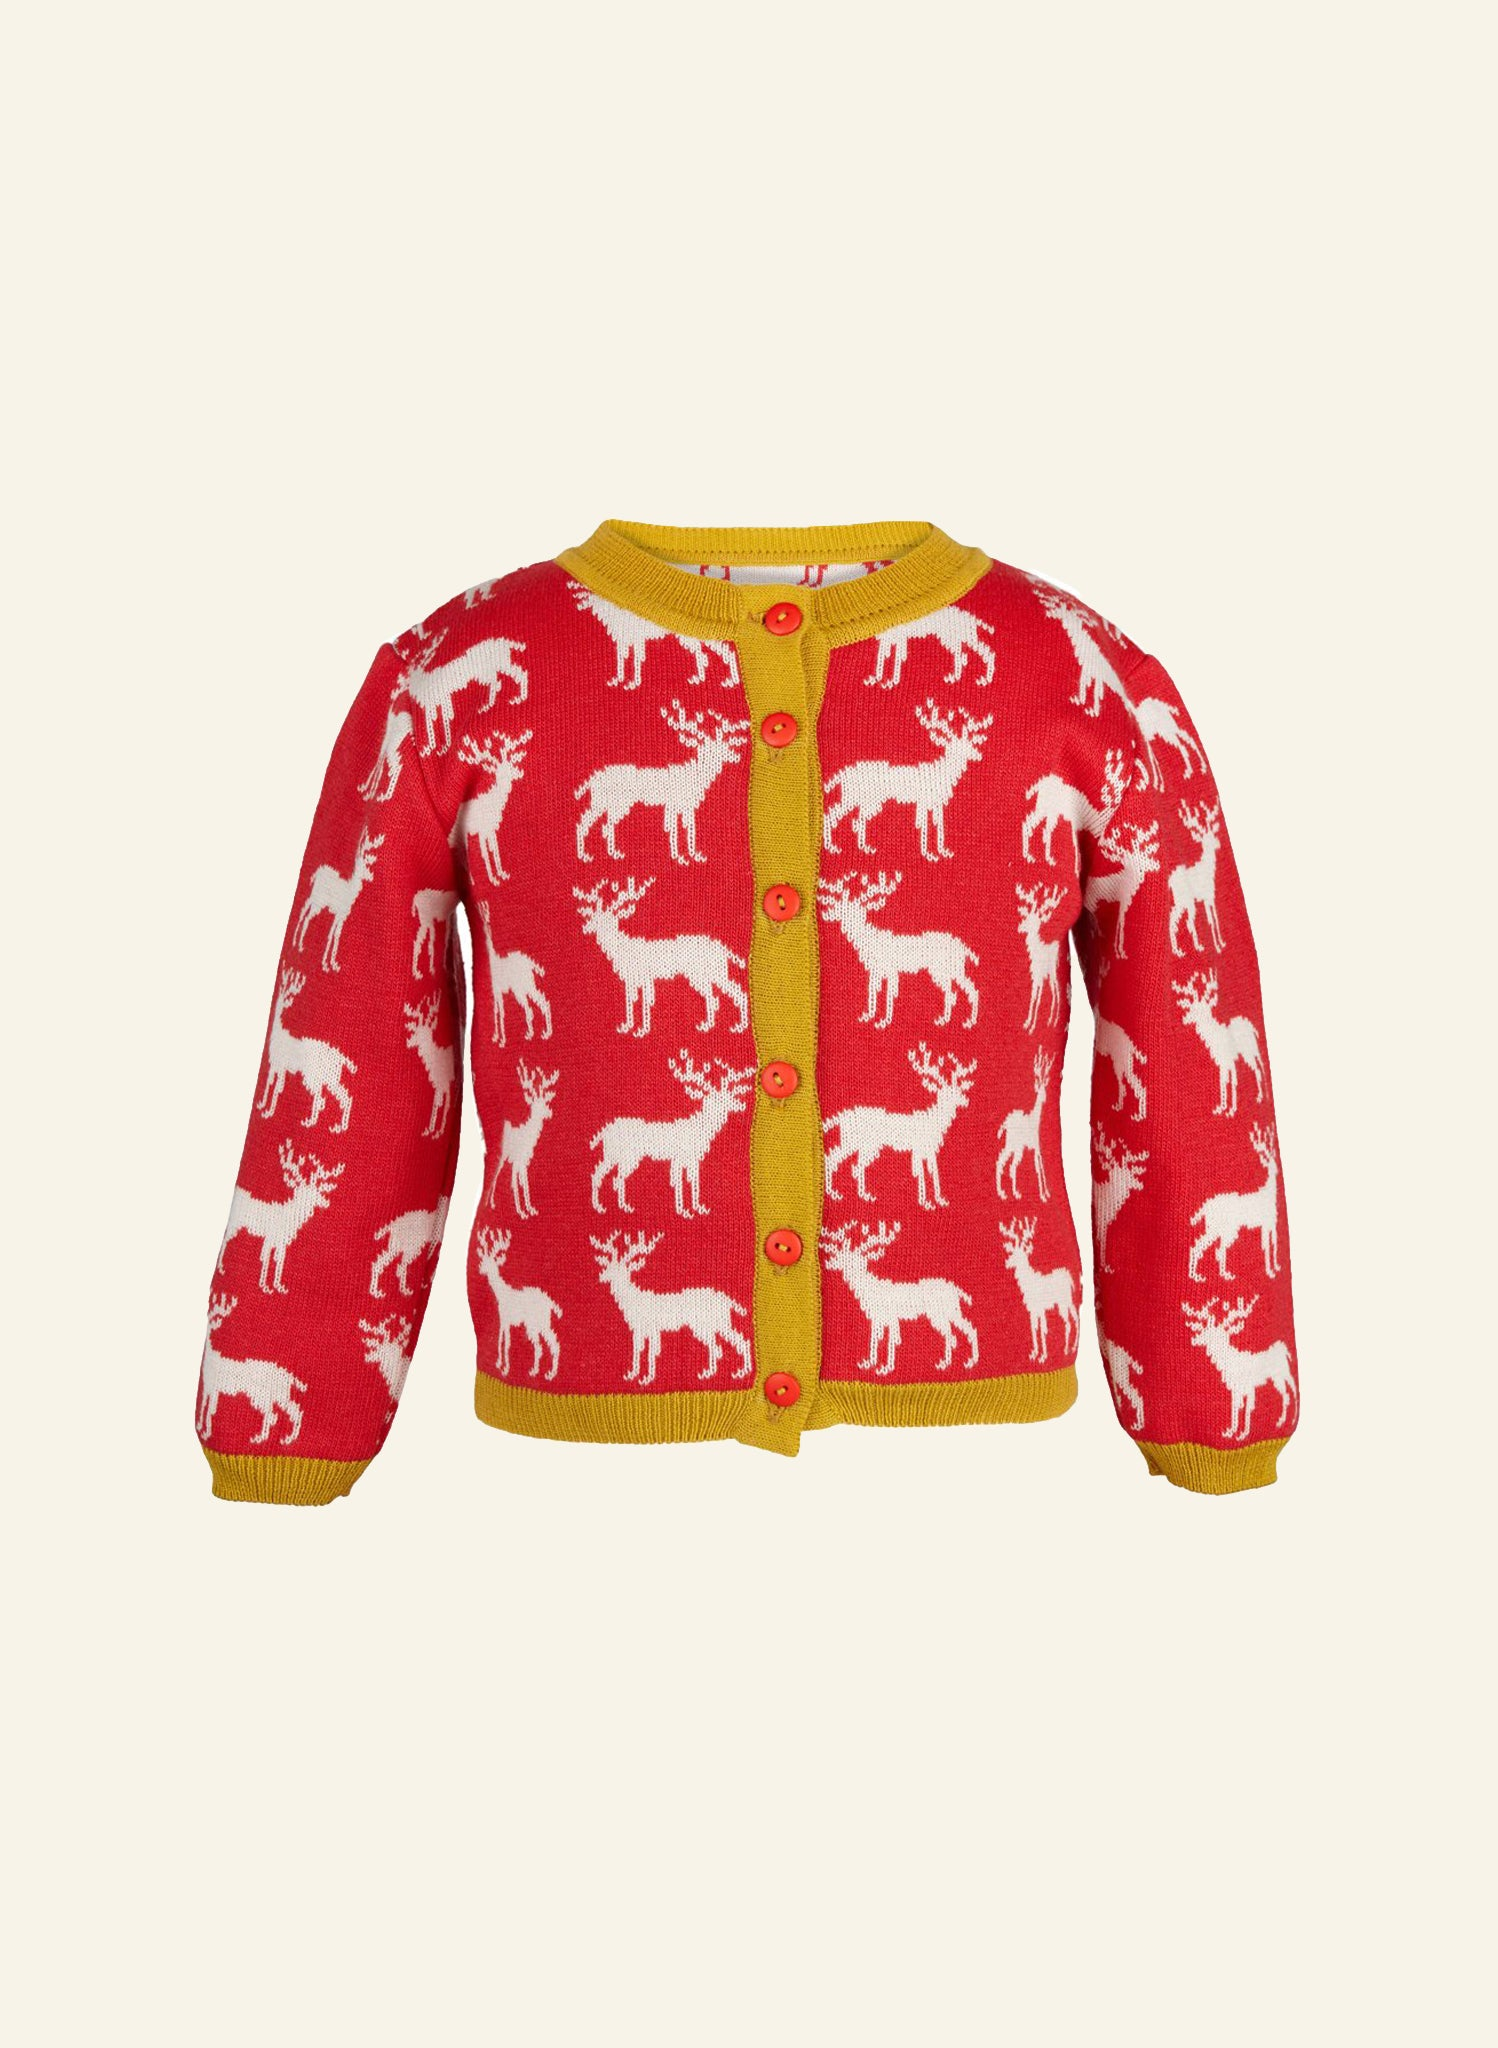 Children's Cardigan - Red Reindeer